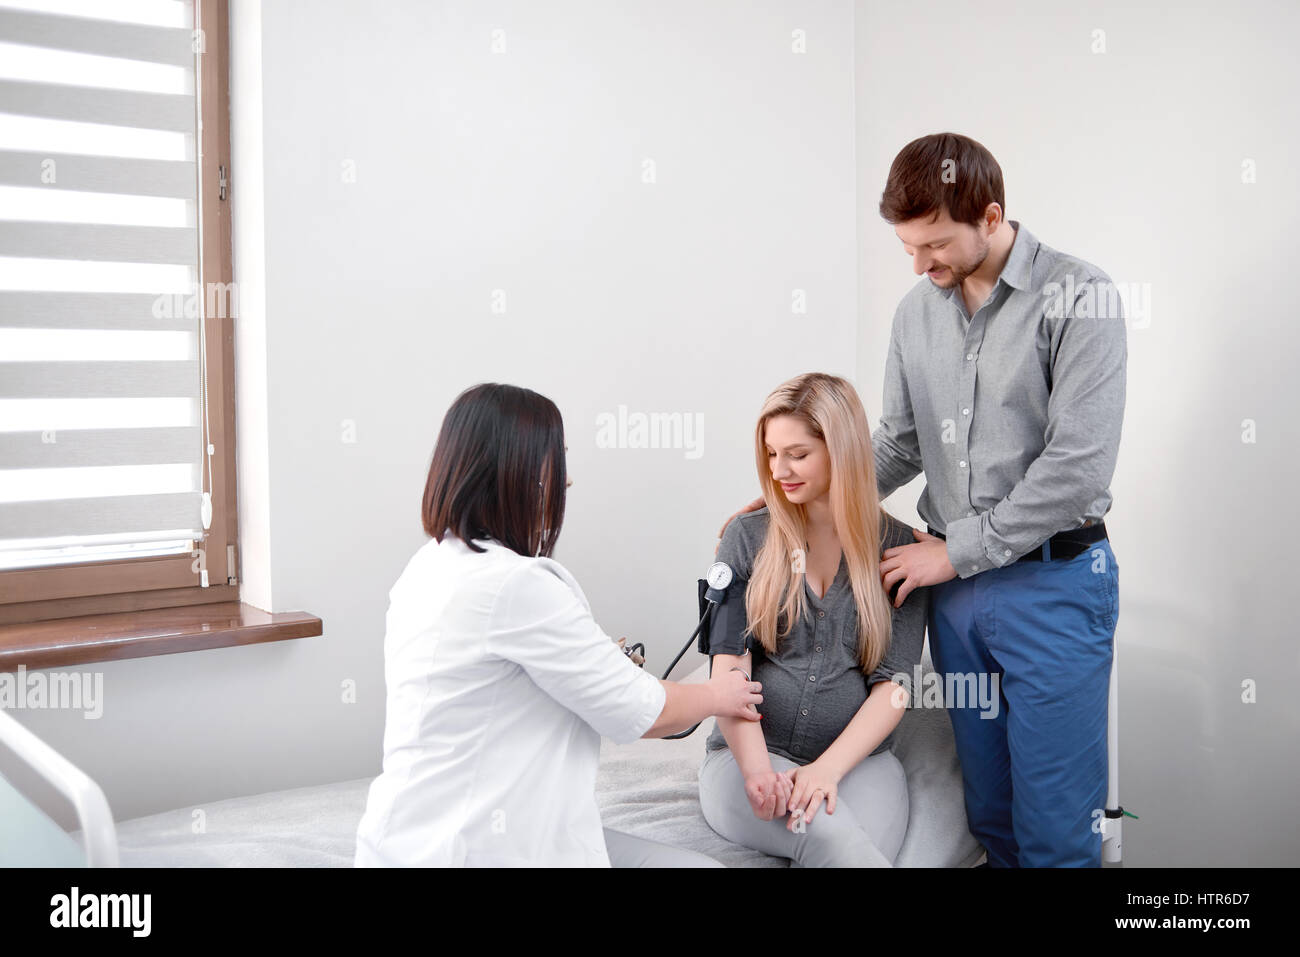 Measuring blood pressure for pregnant woman. - Stock Image